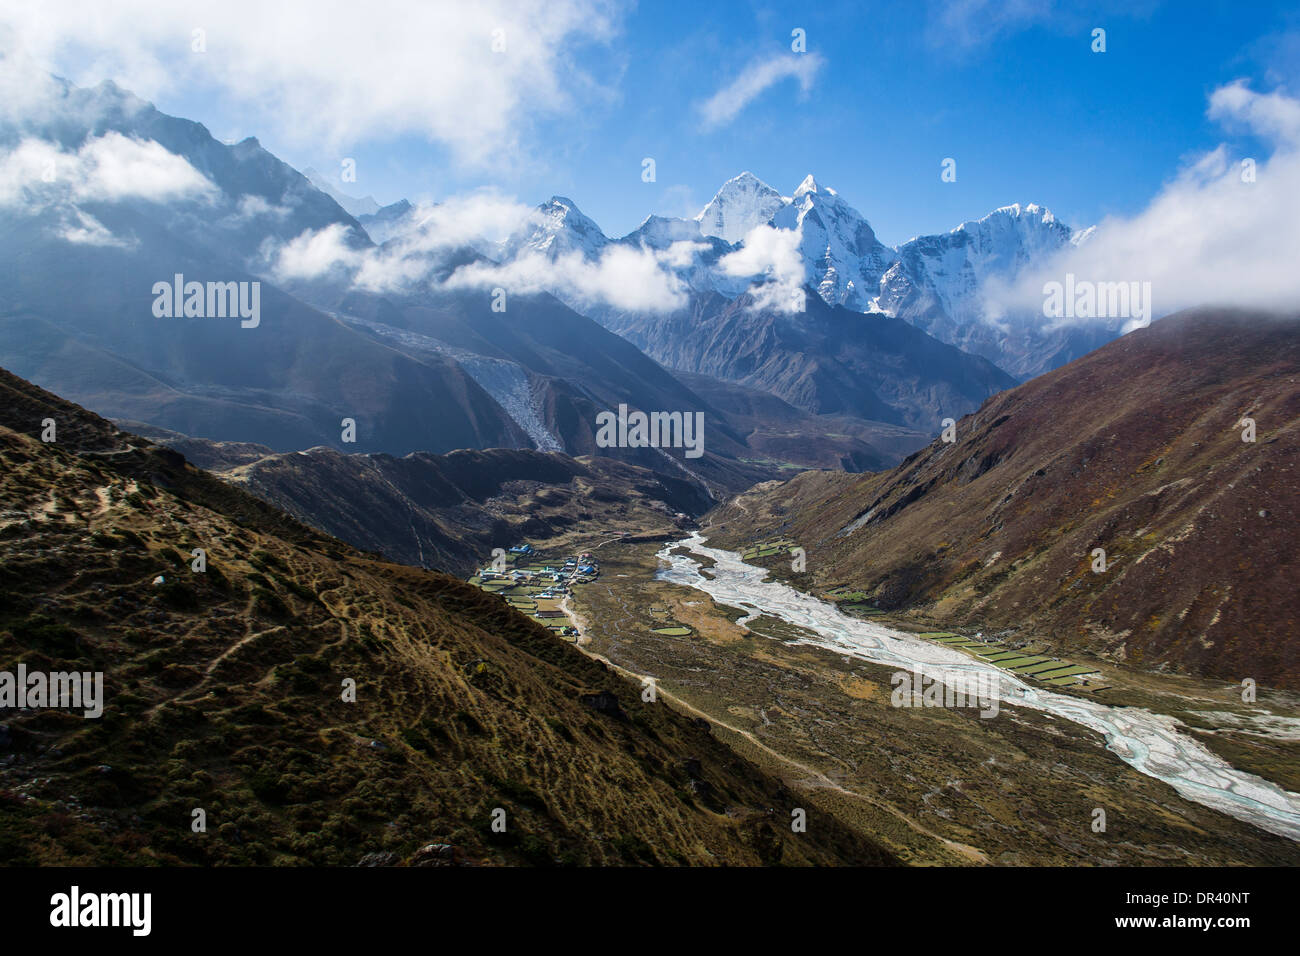 Snow covered Everest - Stock Image